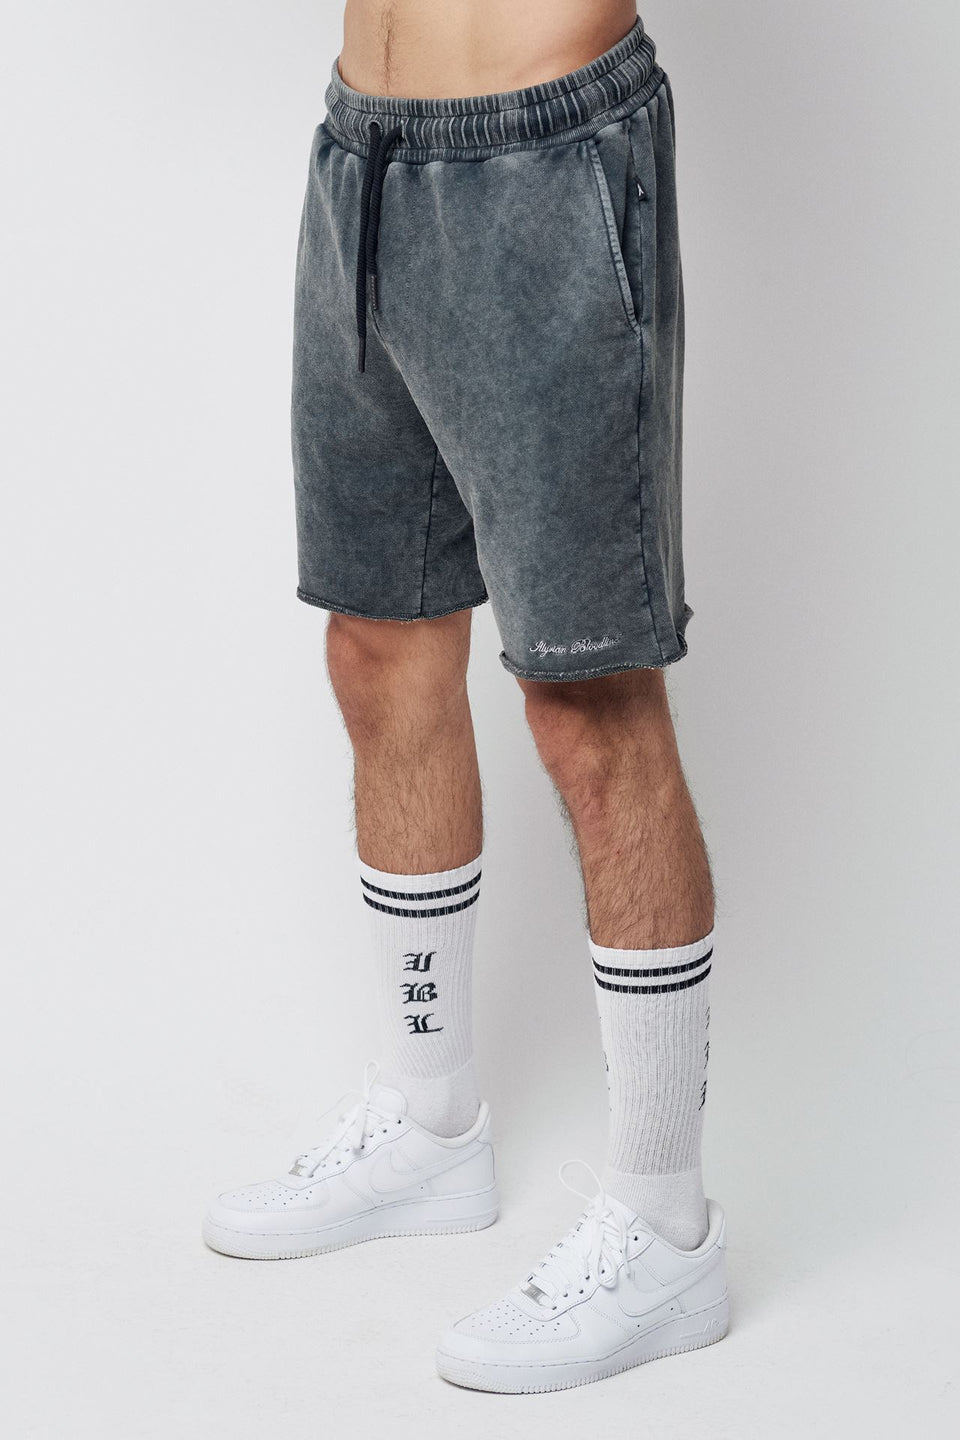 Men's Shorts - Washed Out Black